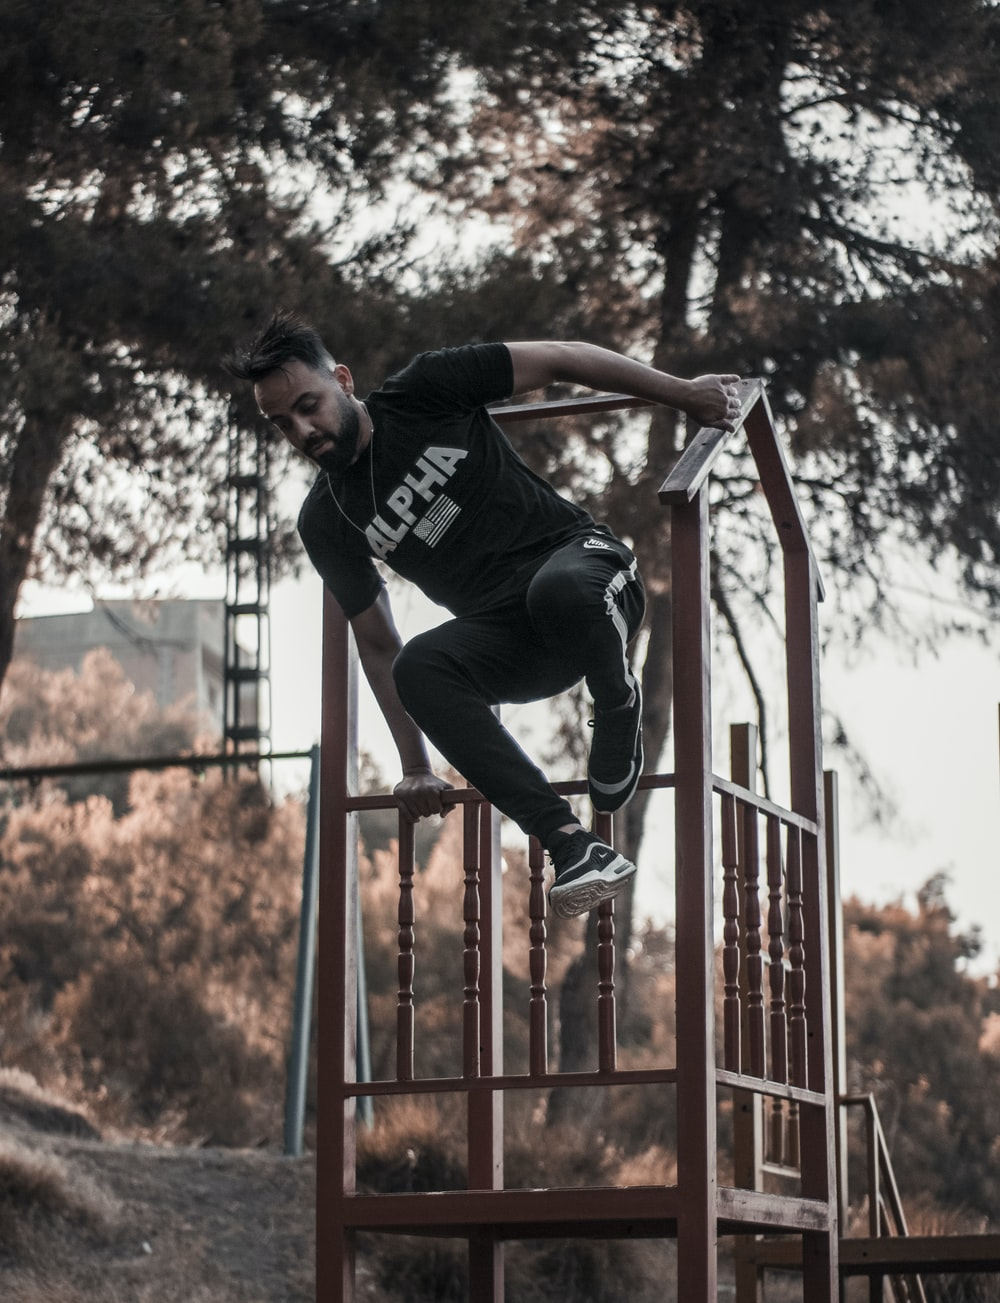 man in black t-shirt and black pants jumping on red metal railings